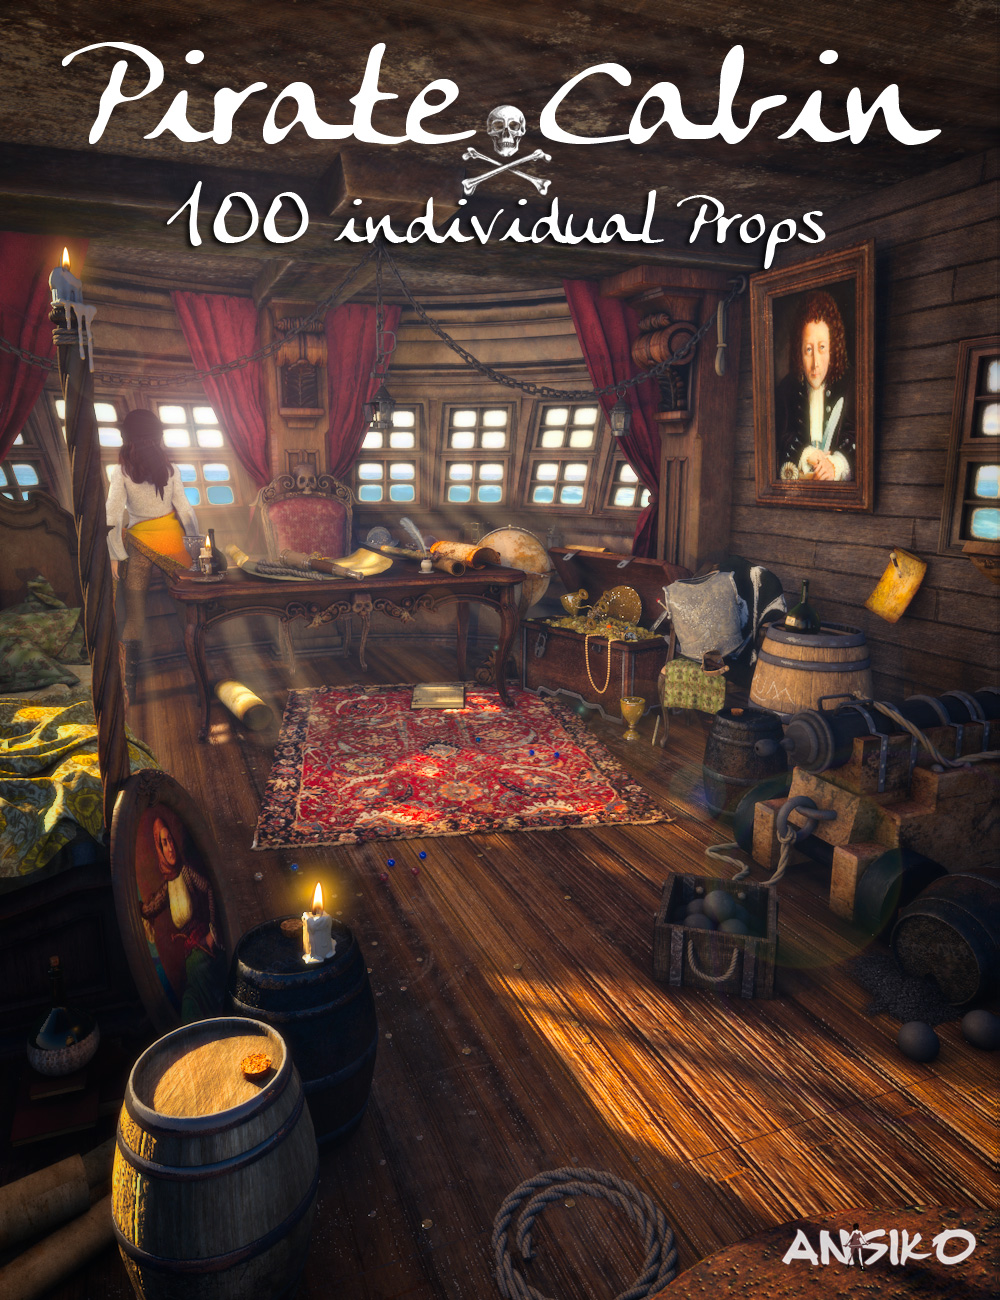 Pirate Cabin by: Ansiko, 3D Models by Daz 3D